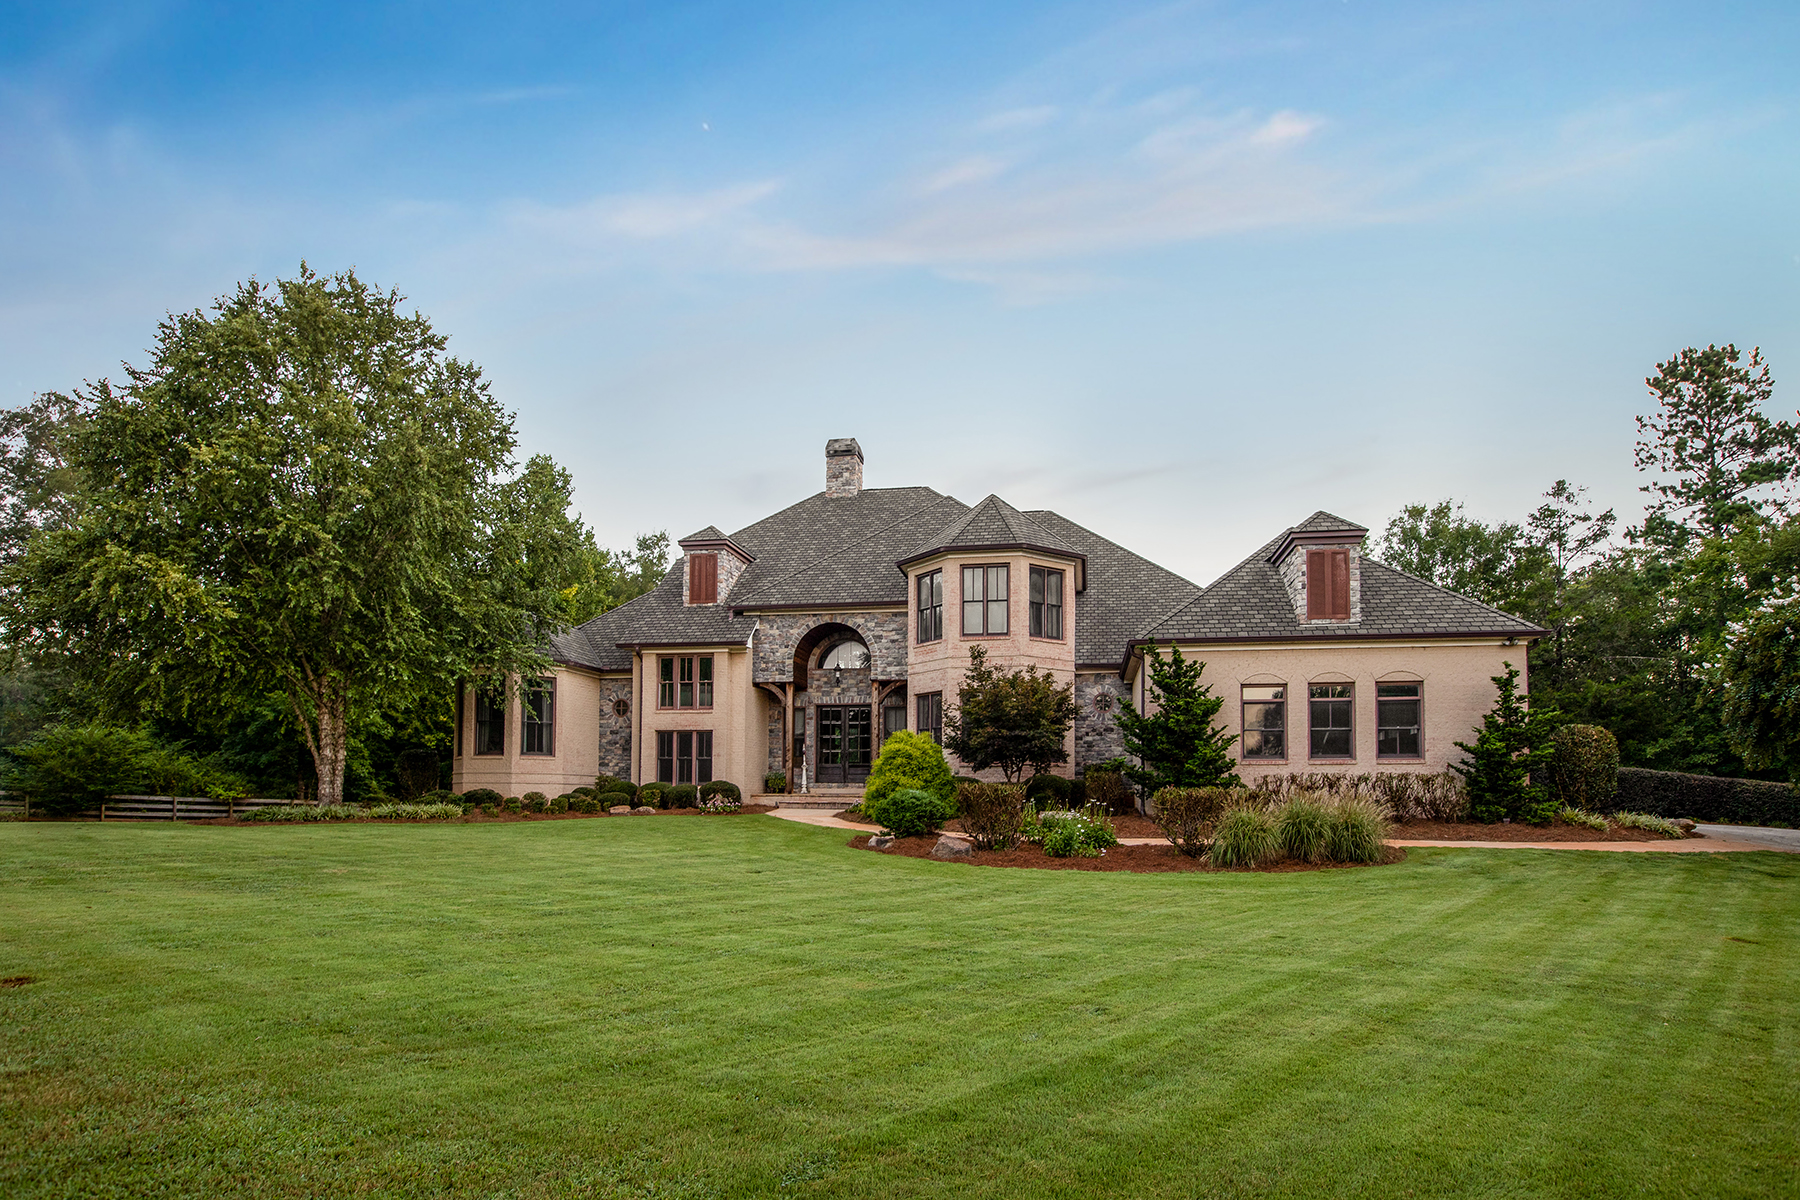 一戸建て のために 売買 アット European-Style Brick and Stone Manor Situated Amid 71 Acres in Jackson Georgia 179 McIntosh Cir Jackson, ジョージア 30233 アメリカ合衆国